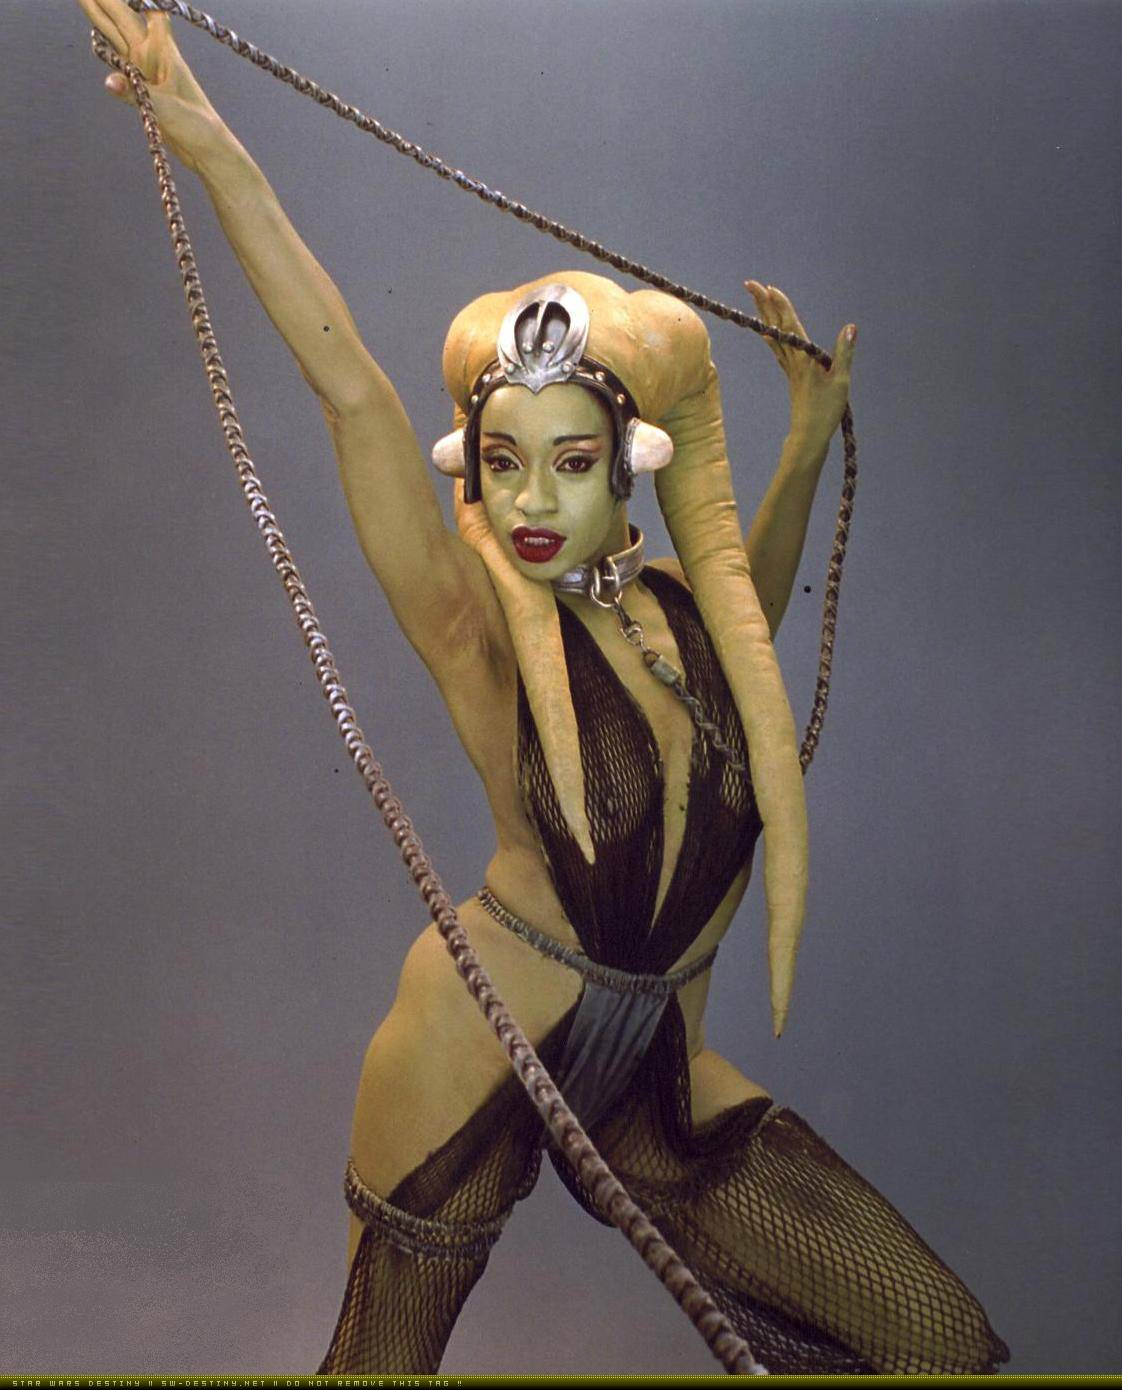 Twi'lek slave naked fetish girl